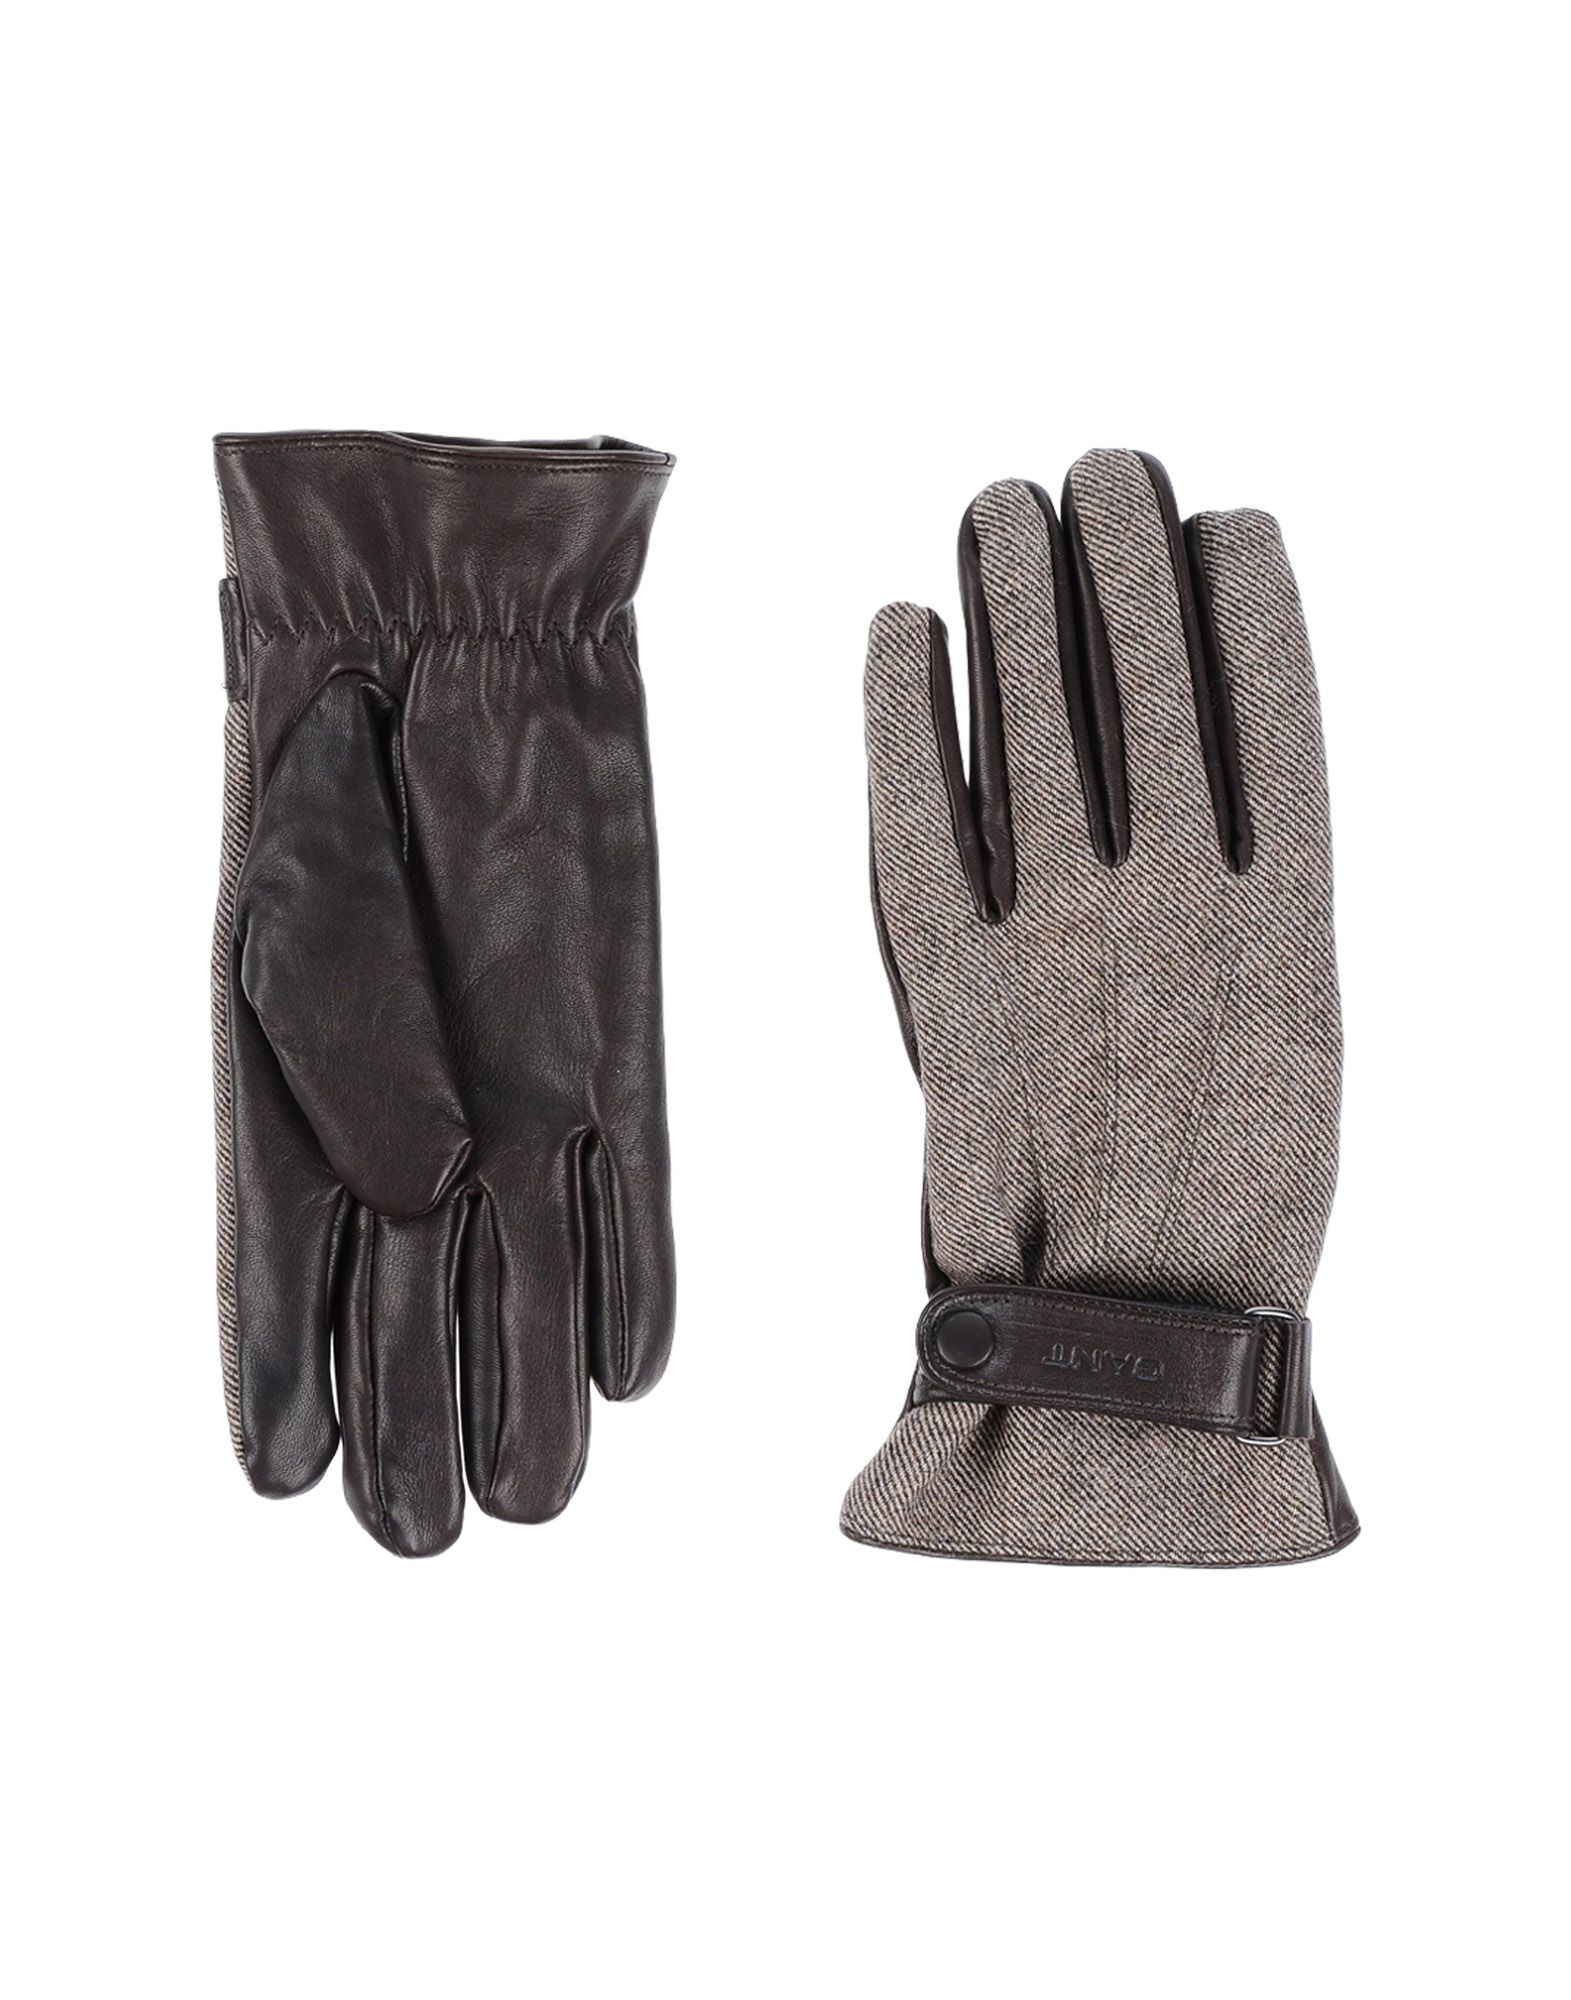 lyst gant gloves in brown for men. Black Bedroom Furniture Sets. Home Design Ideas